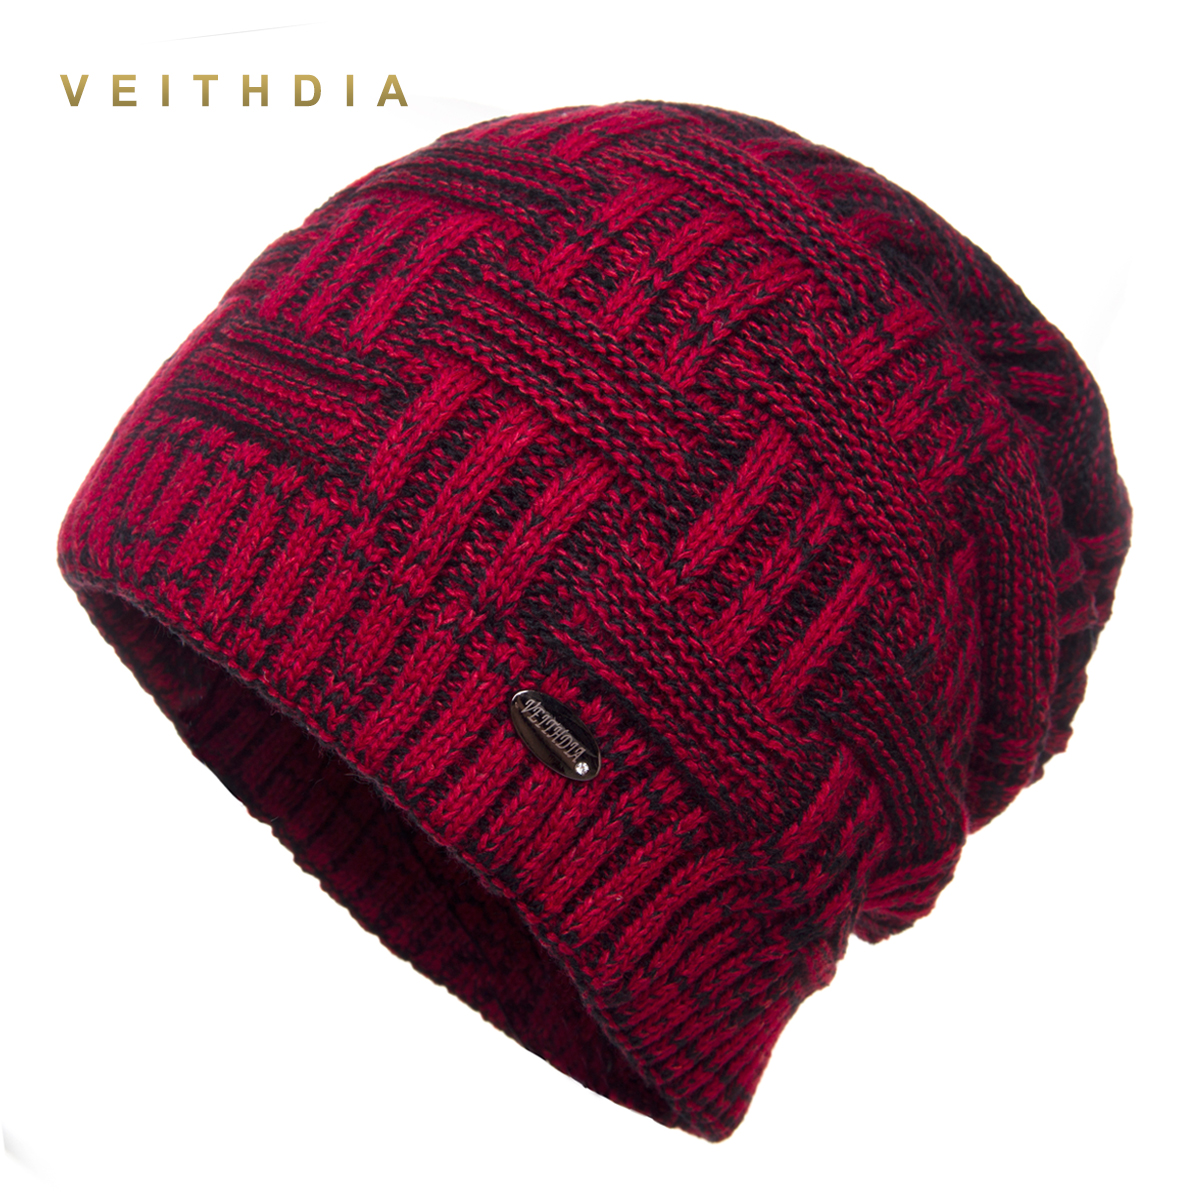 VEITHDIA Super cool   Skullies   Hats For Men   beanies   Knitted plus velvet Patchwork Color Cap Winter Men's Hat gorro cap Thick warm